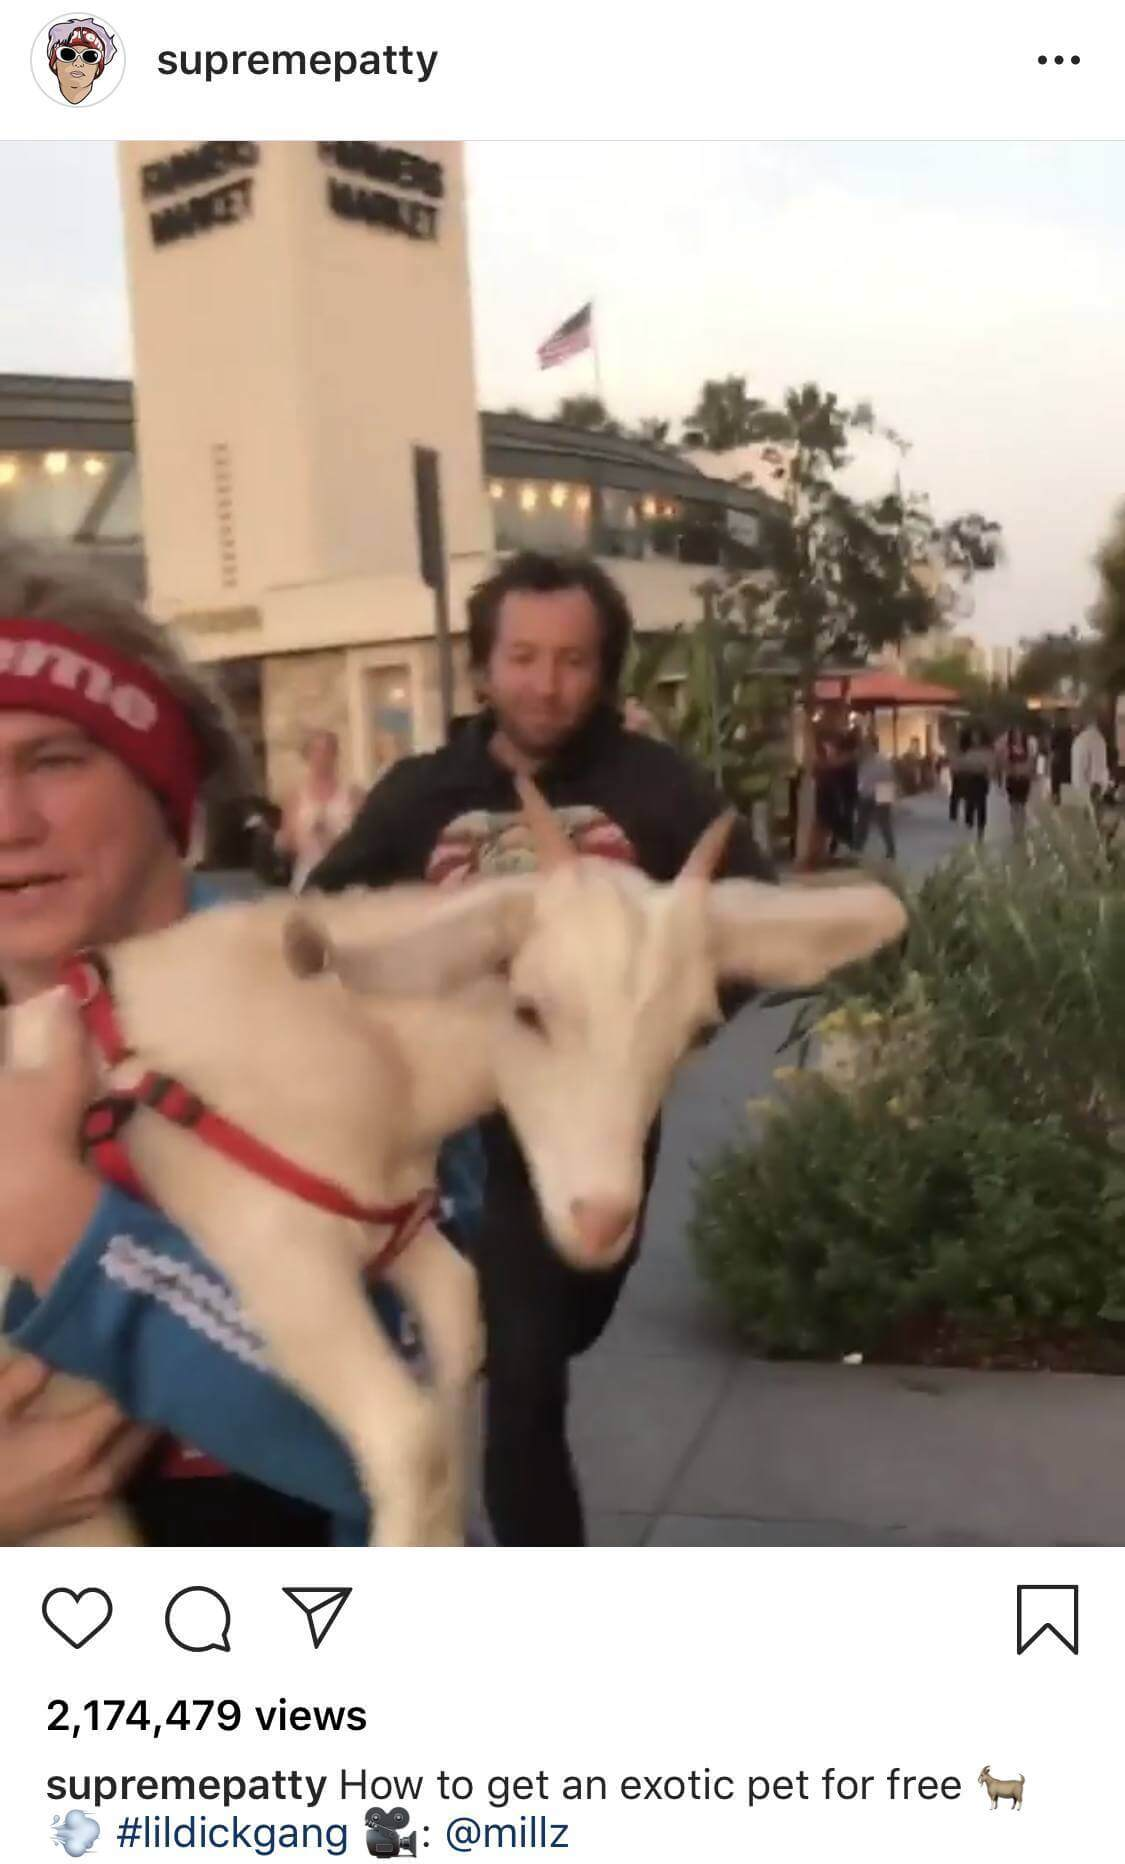 Supreme Patty Stealing Goat